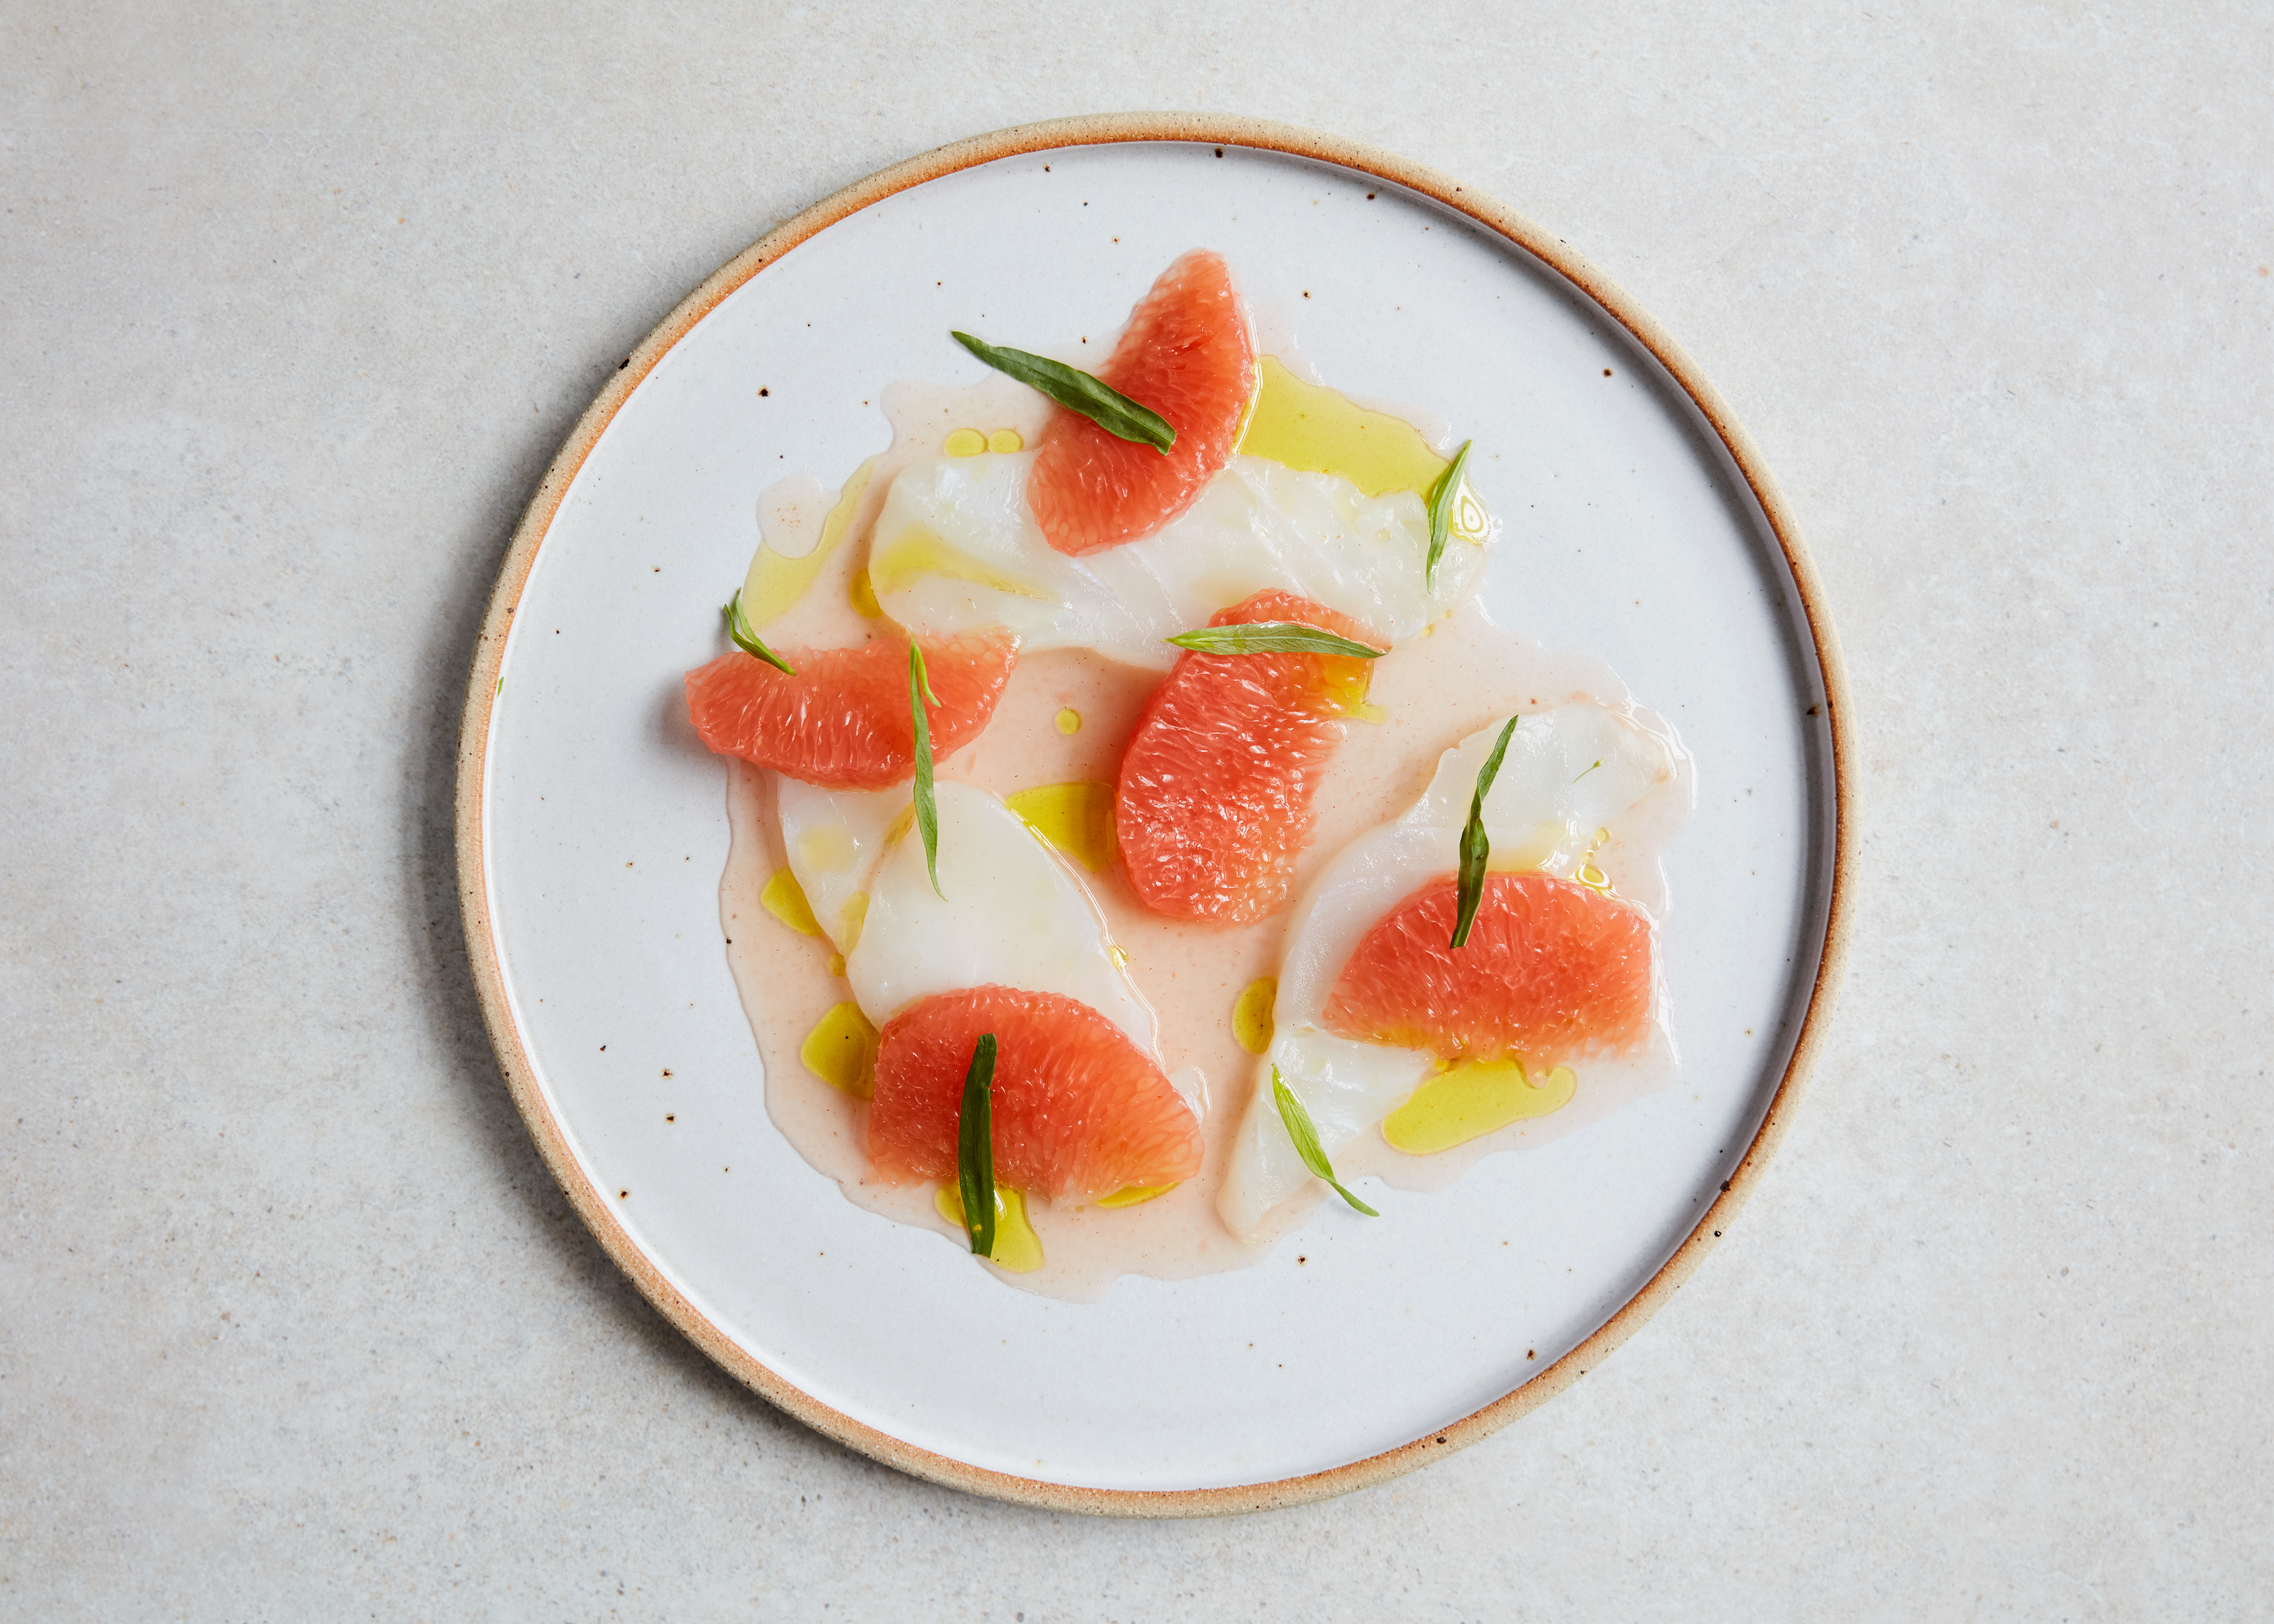 Cod crudo, at Levan in Peckham, the upcoming London restaurant opening from Nicholas Balfe of Salon, Brixton